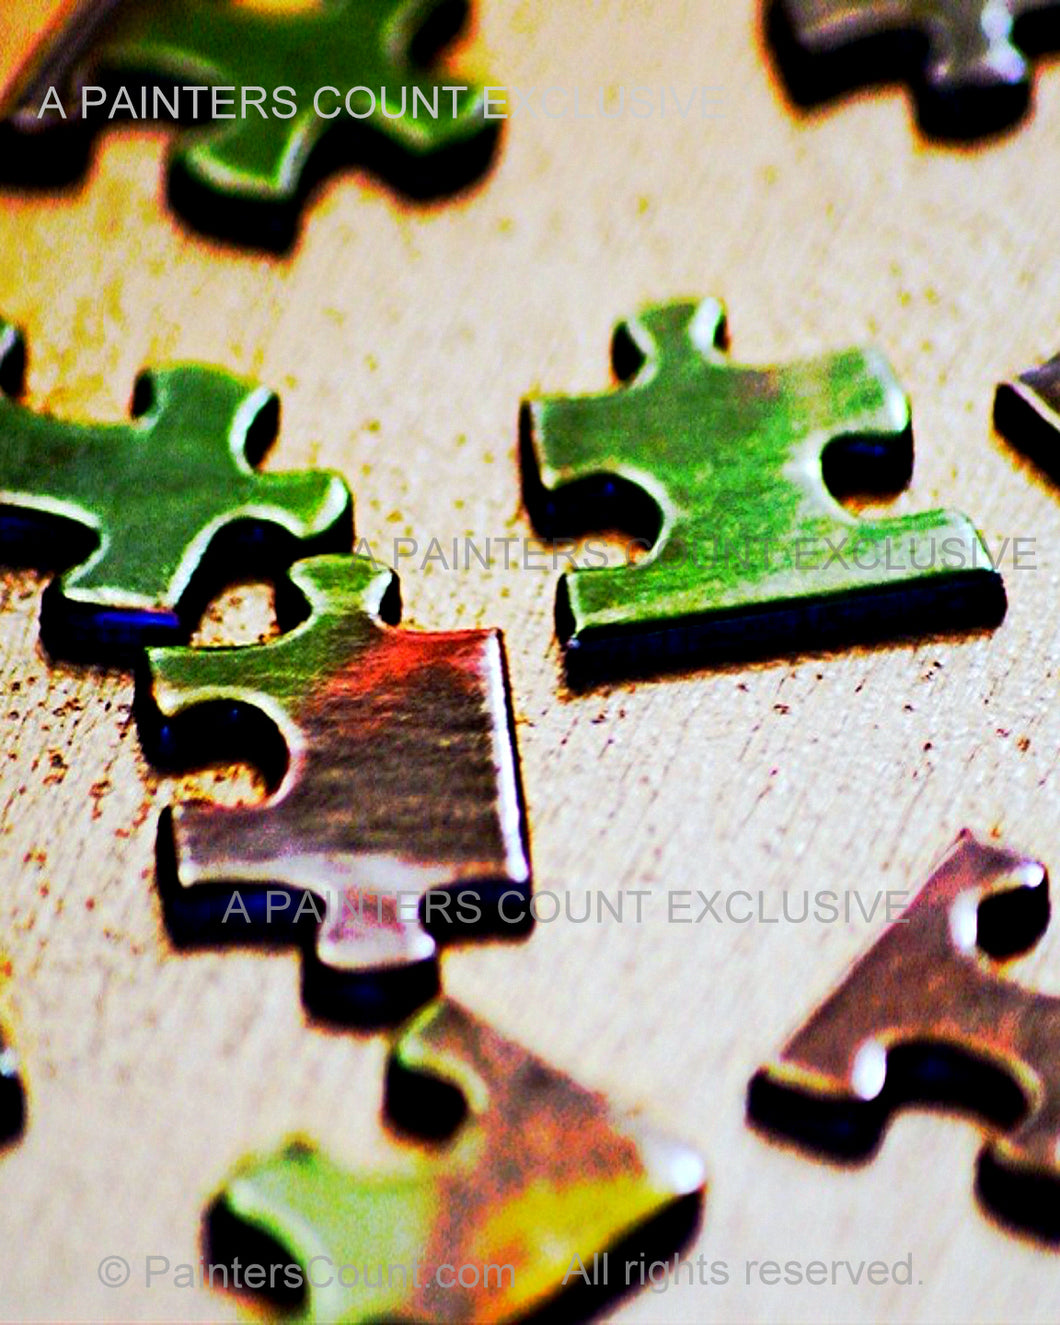 PUZZLE PIECES * PC EXCLUSIVE *